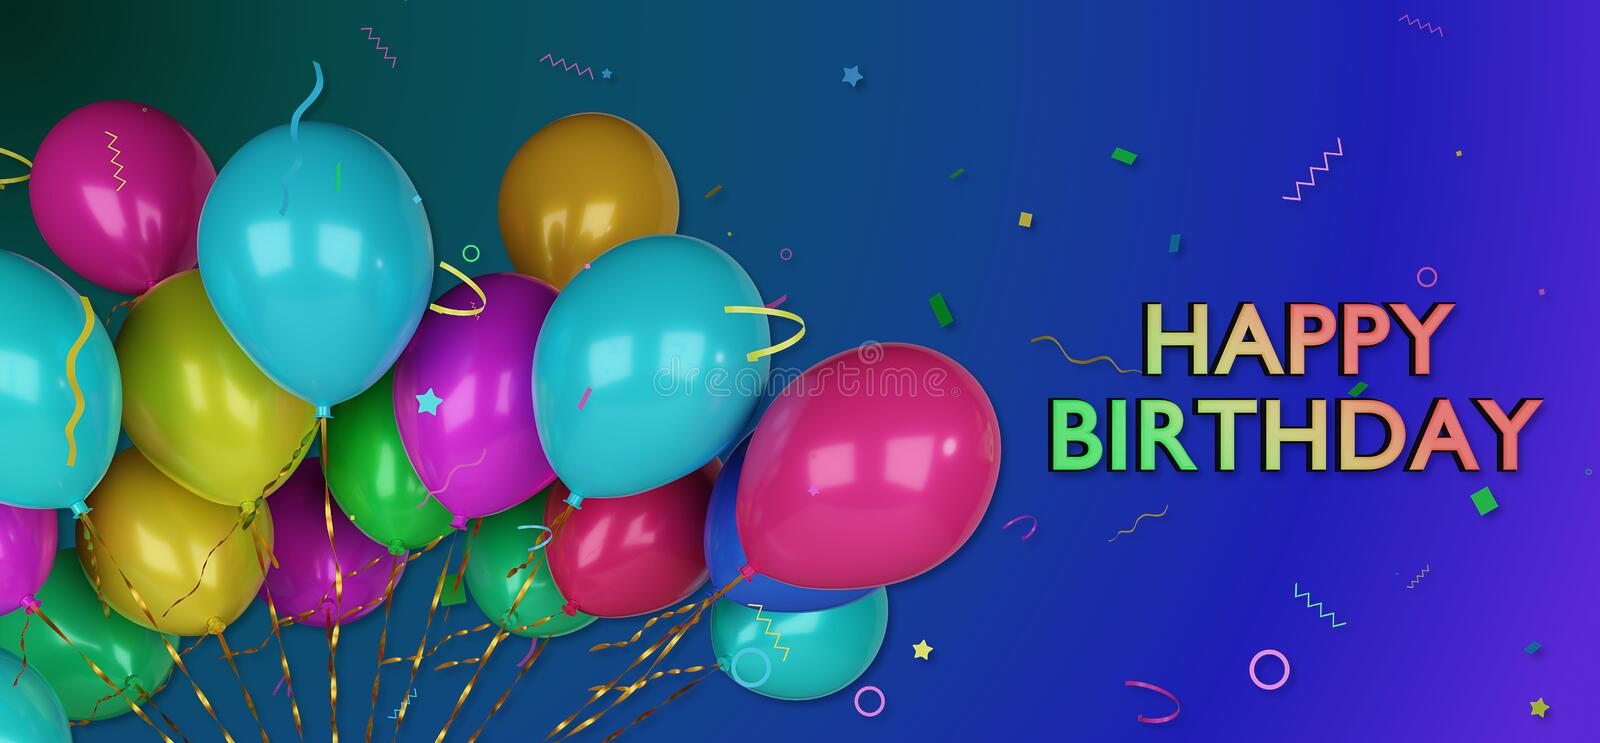 3d happy birthday greetings card stock illustration illustration 3d happy birthday greetings card with colorful balloons and confetti m4hsunfo